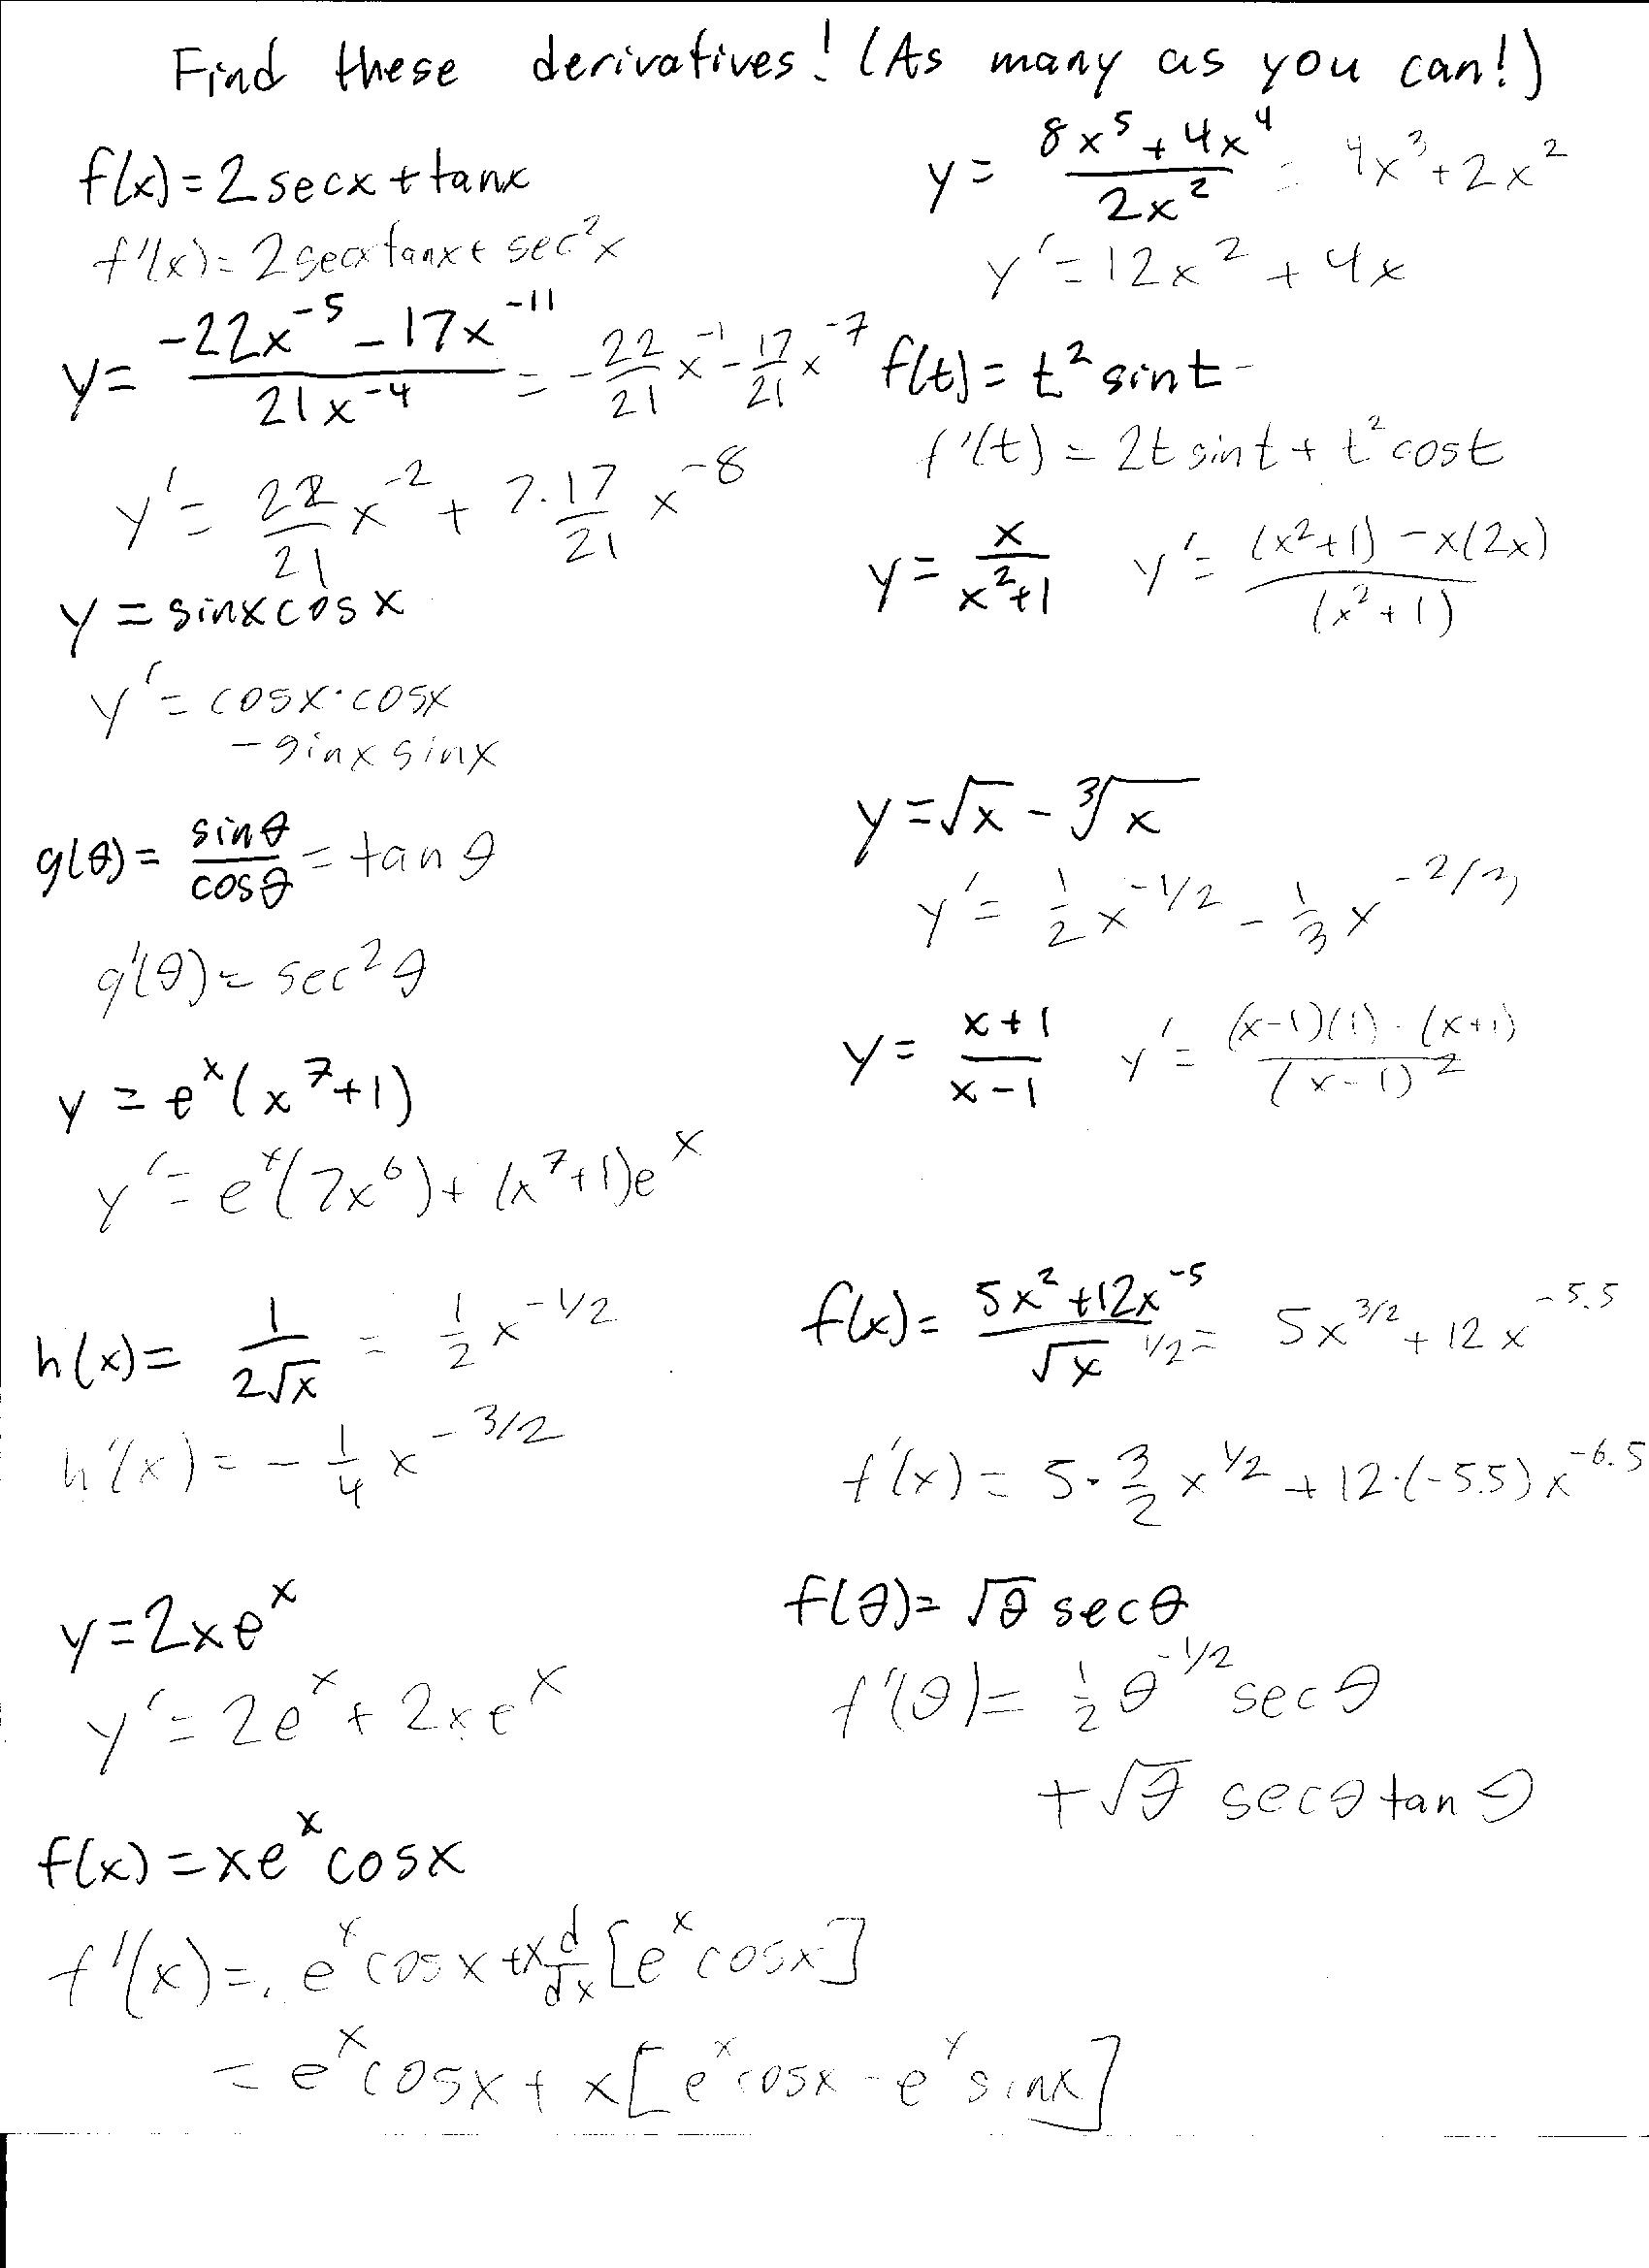 worksheet Solutions Worksheet Answers quiz 5 and 6 solutions worksheet eric lake derivative 1